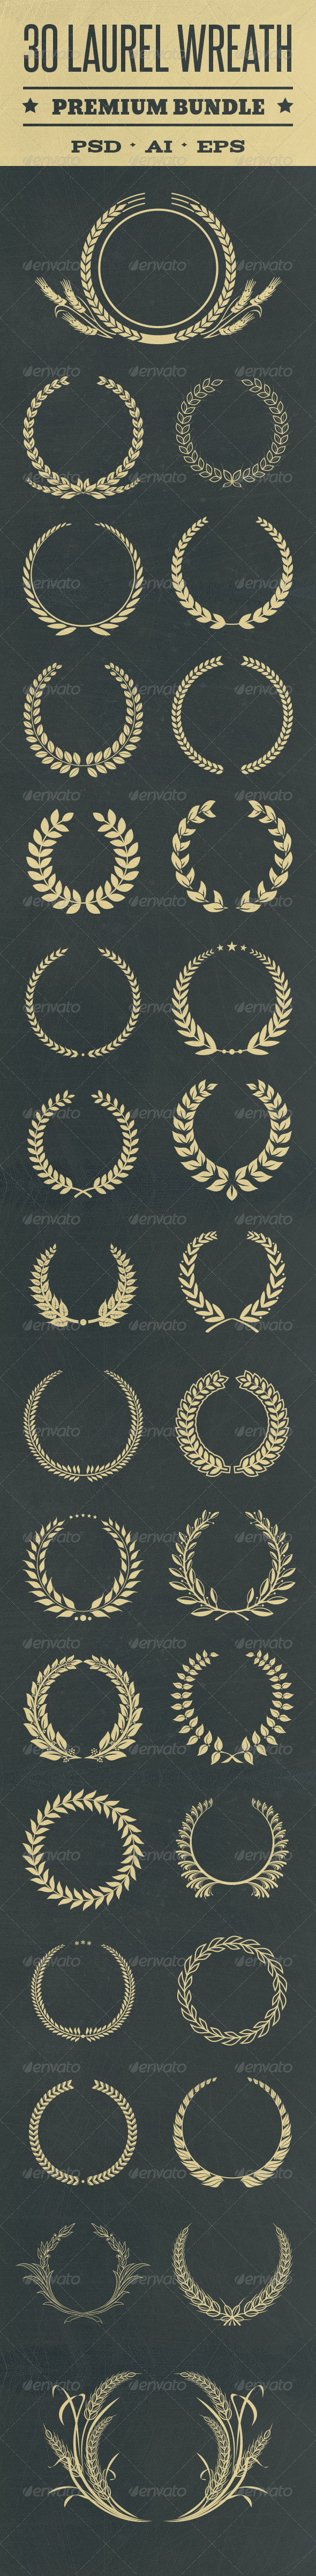 GraphicRiver 30 Laurel Wreath 8253524